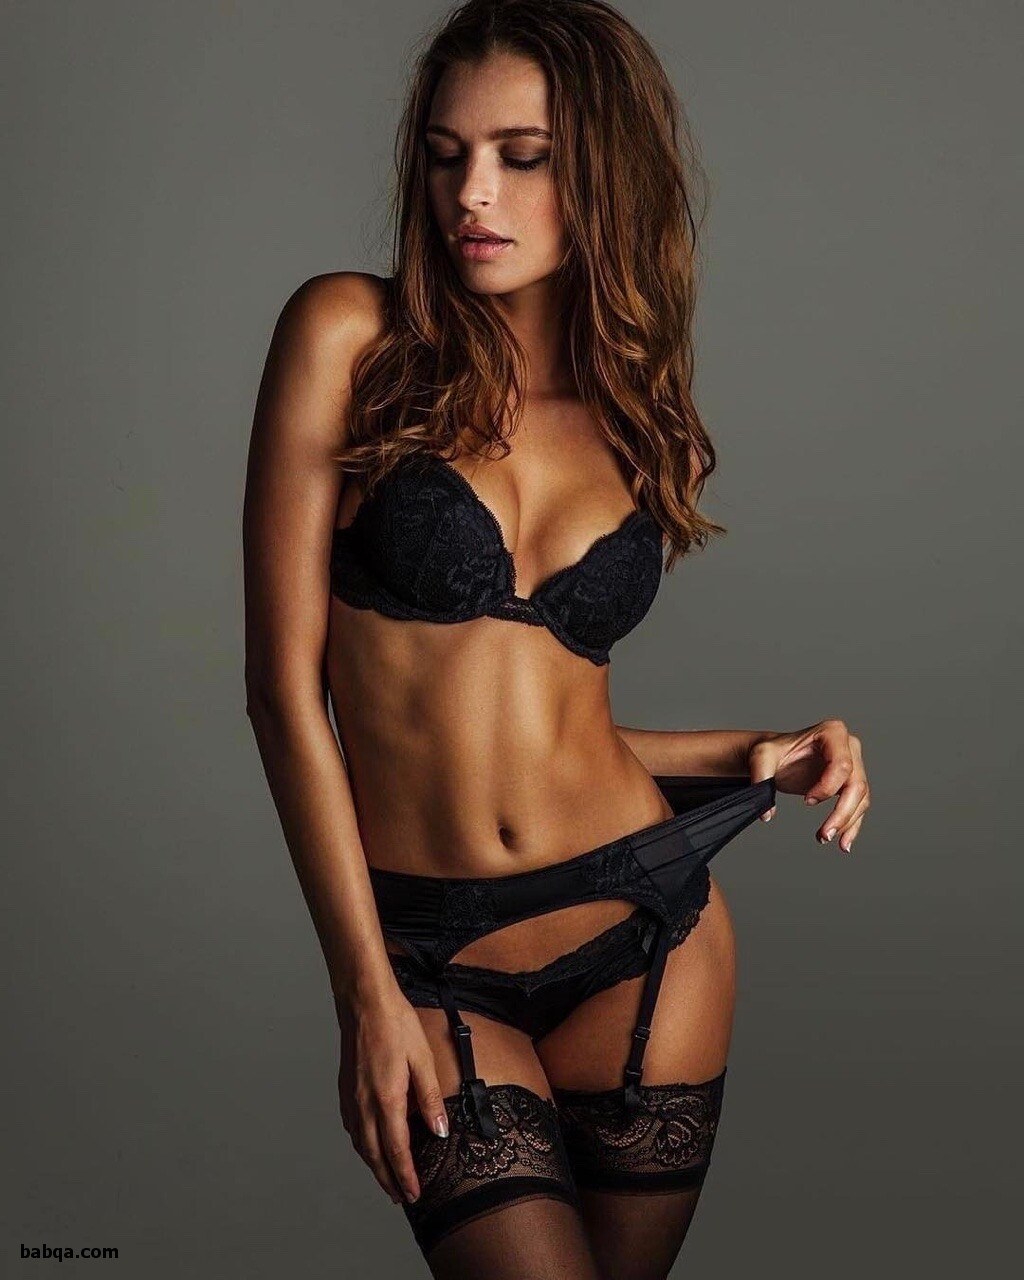 solo lingerie tease and lingerie girls images